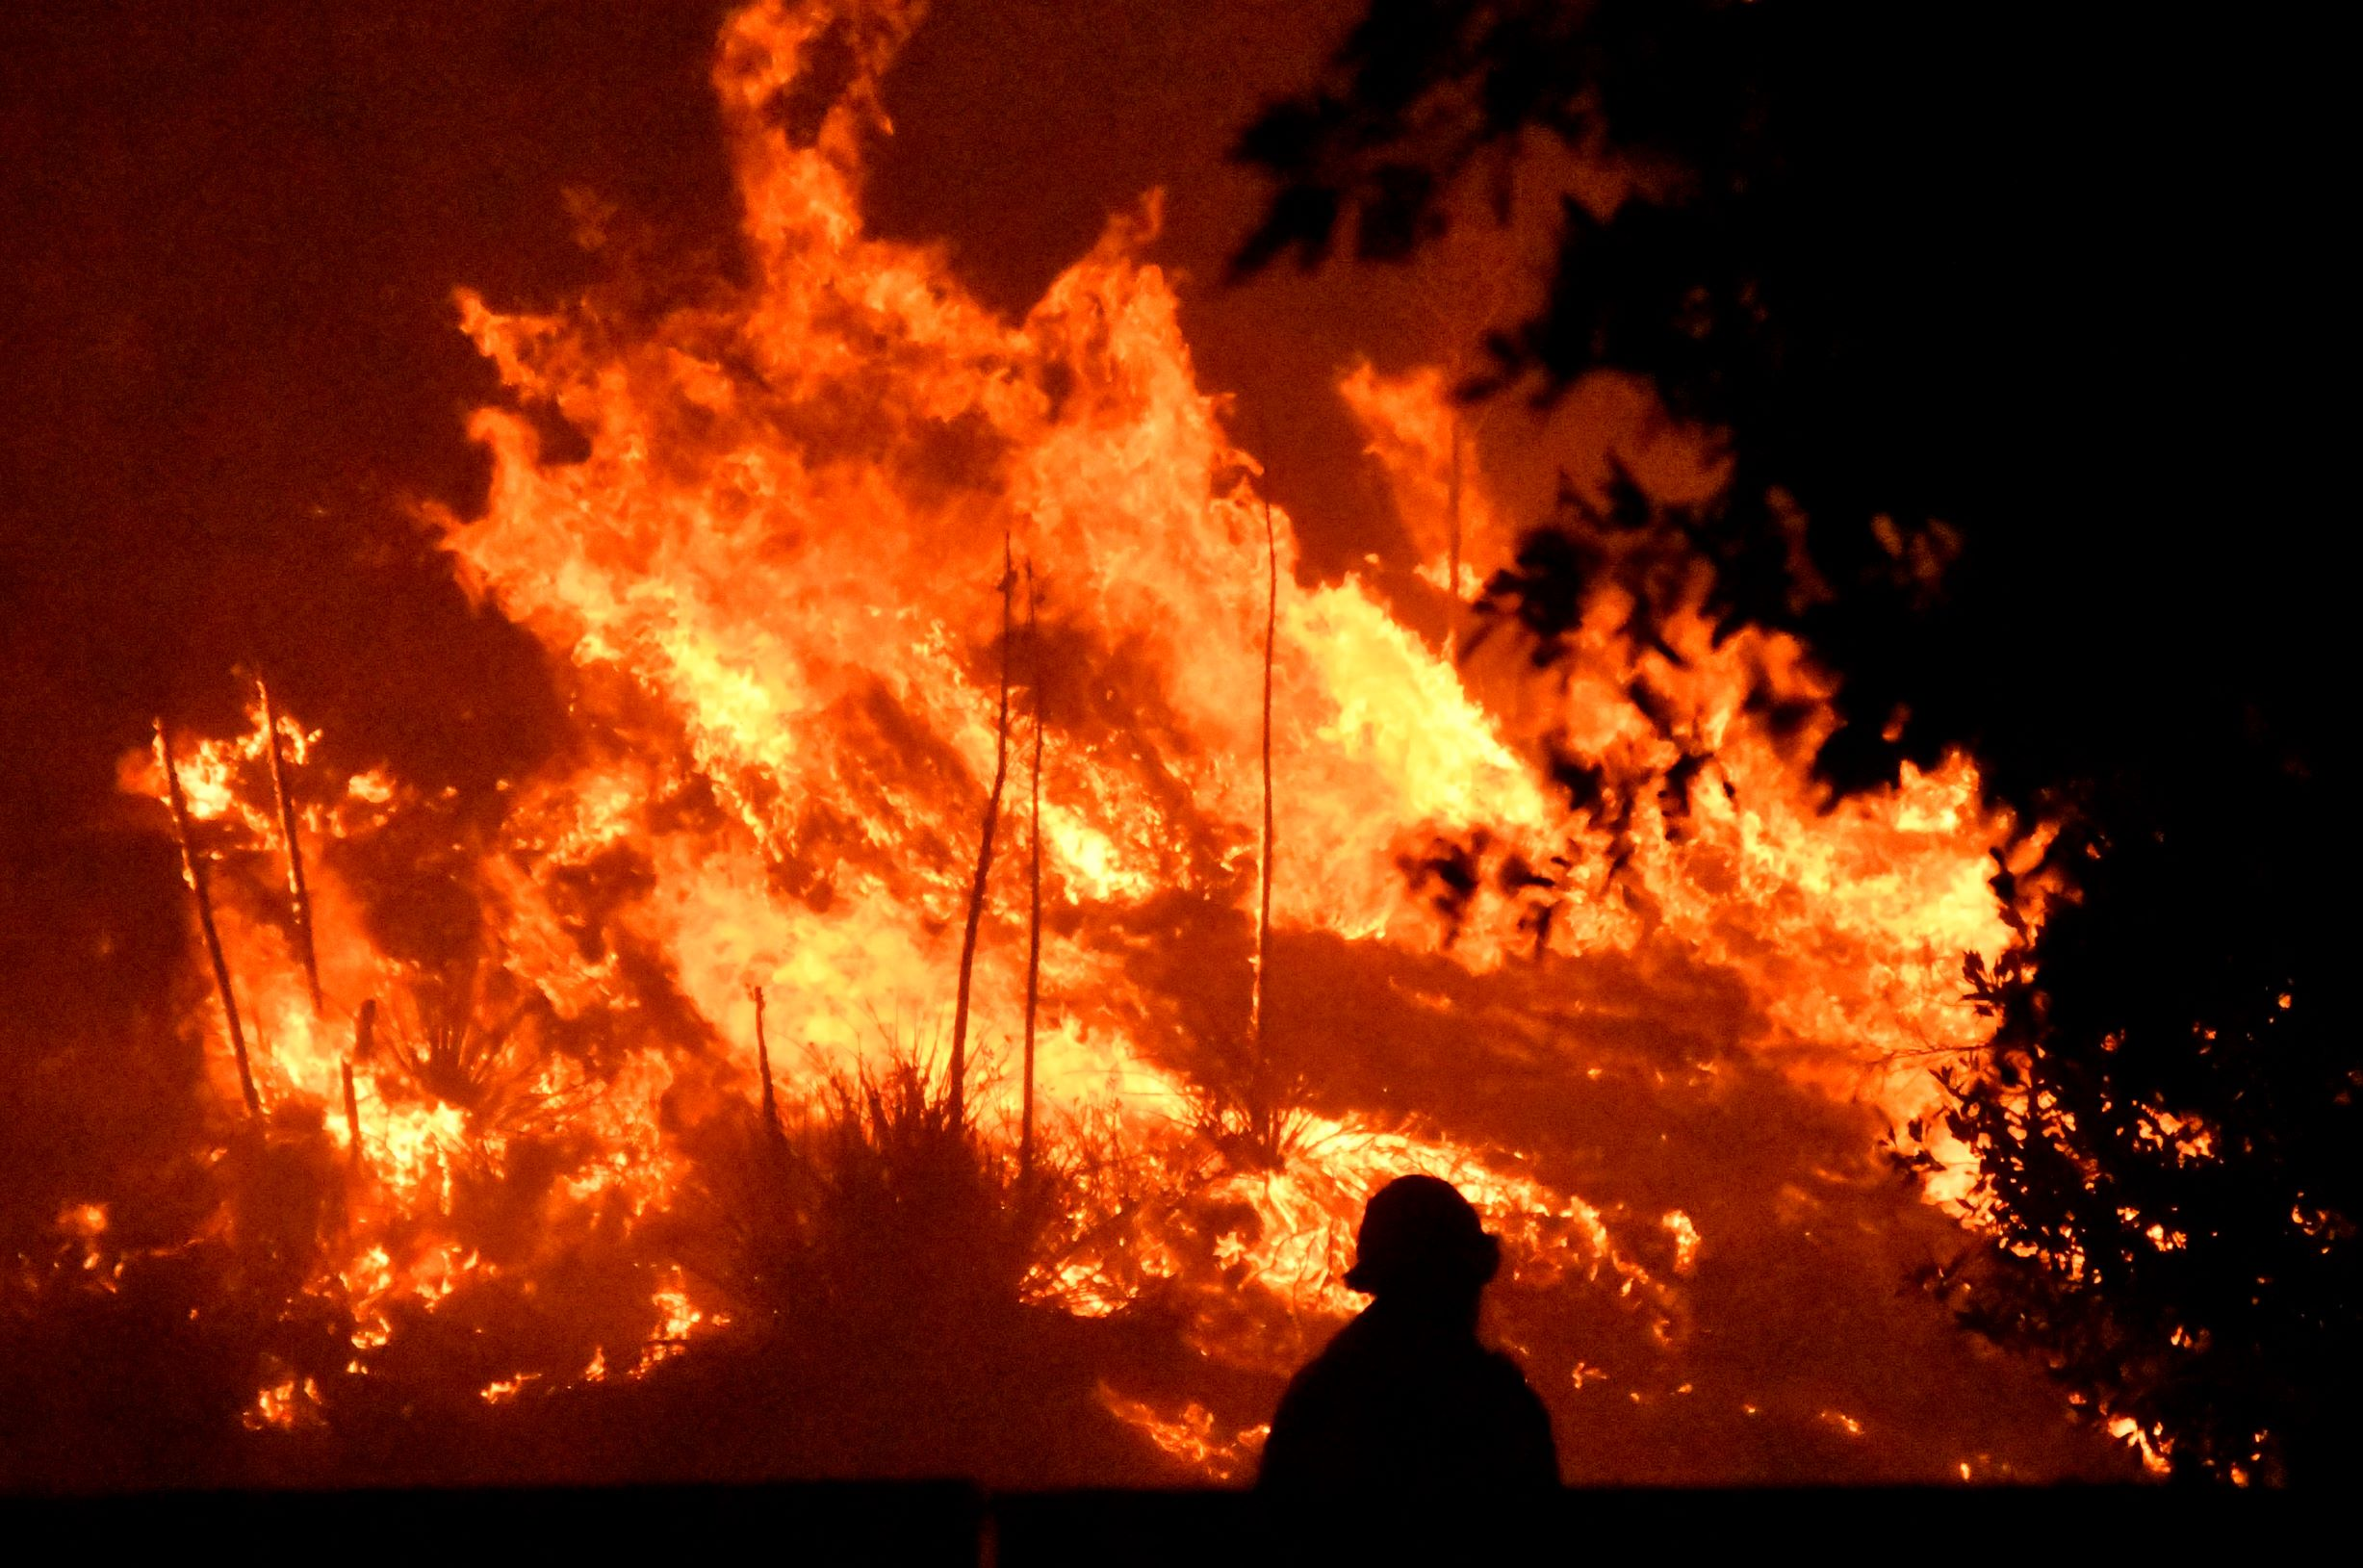 wind-driven los angeles wildfire leaves one dead, forces